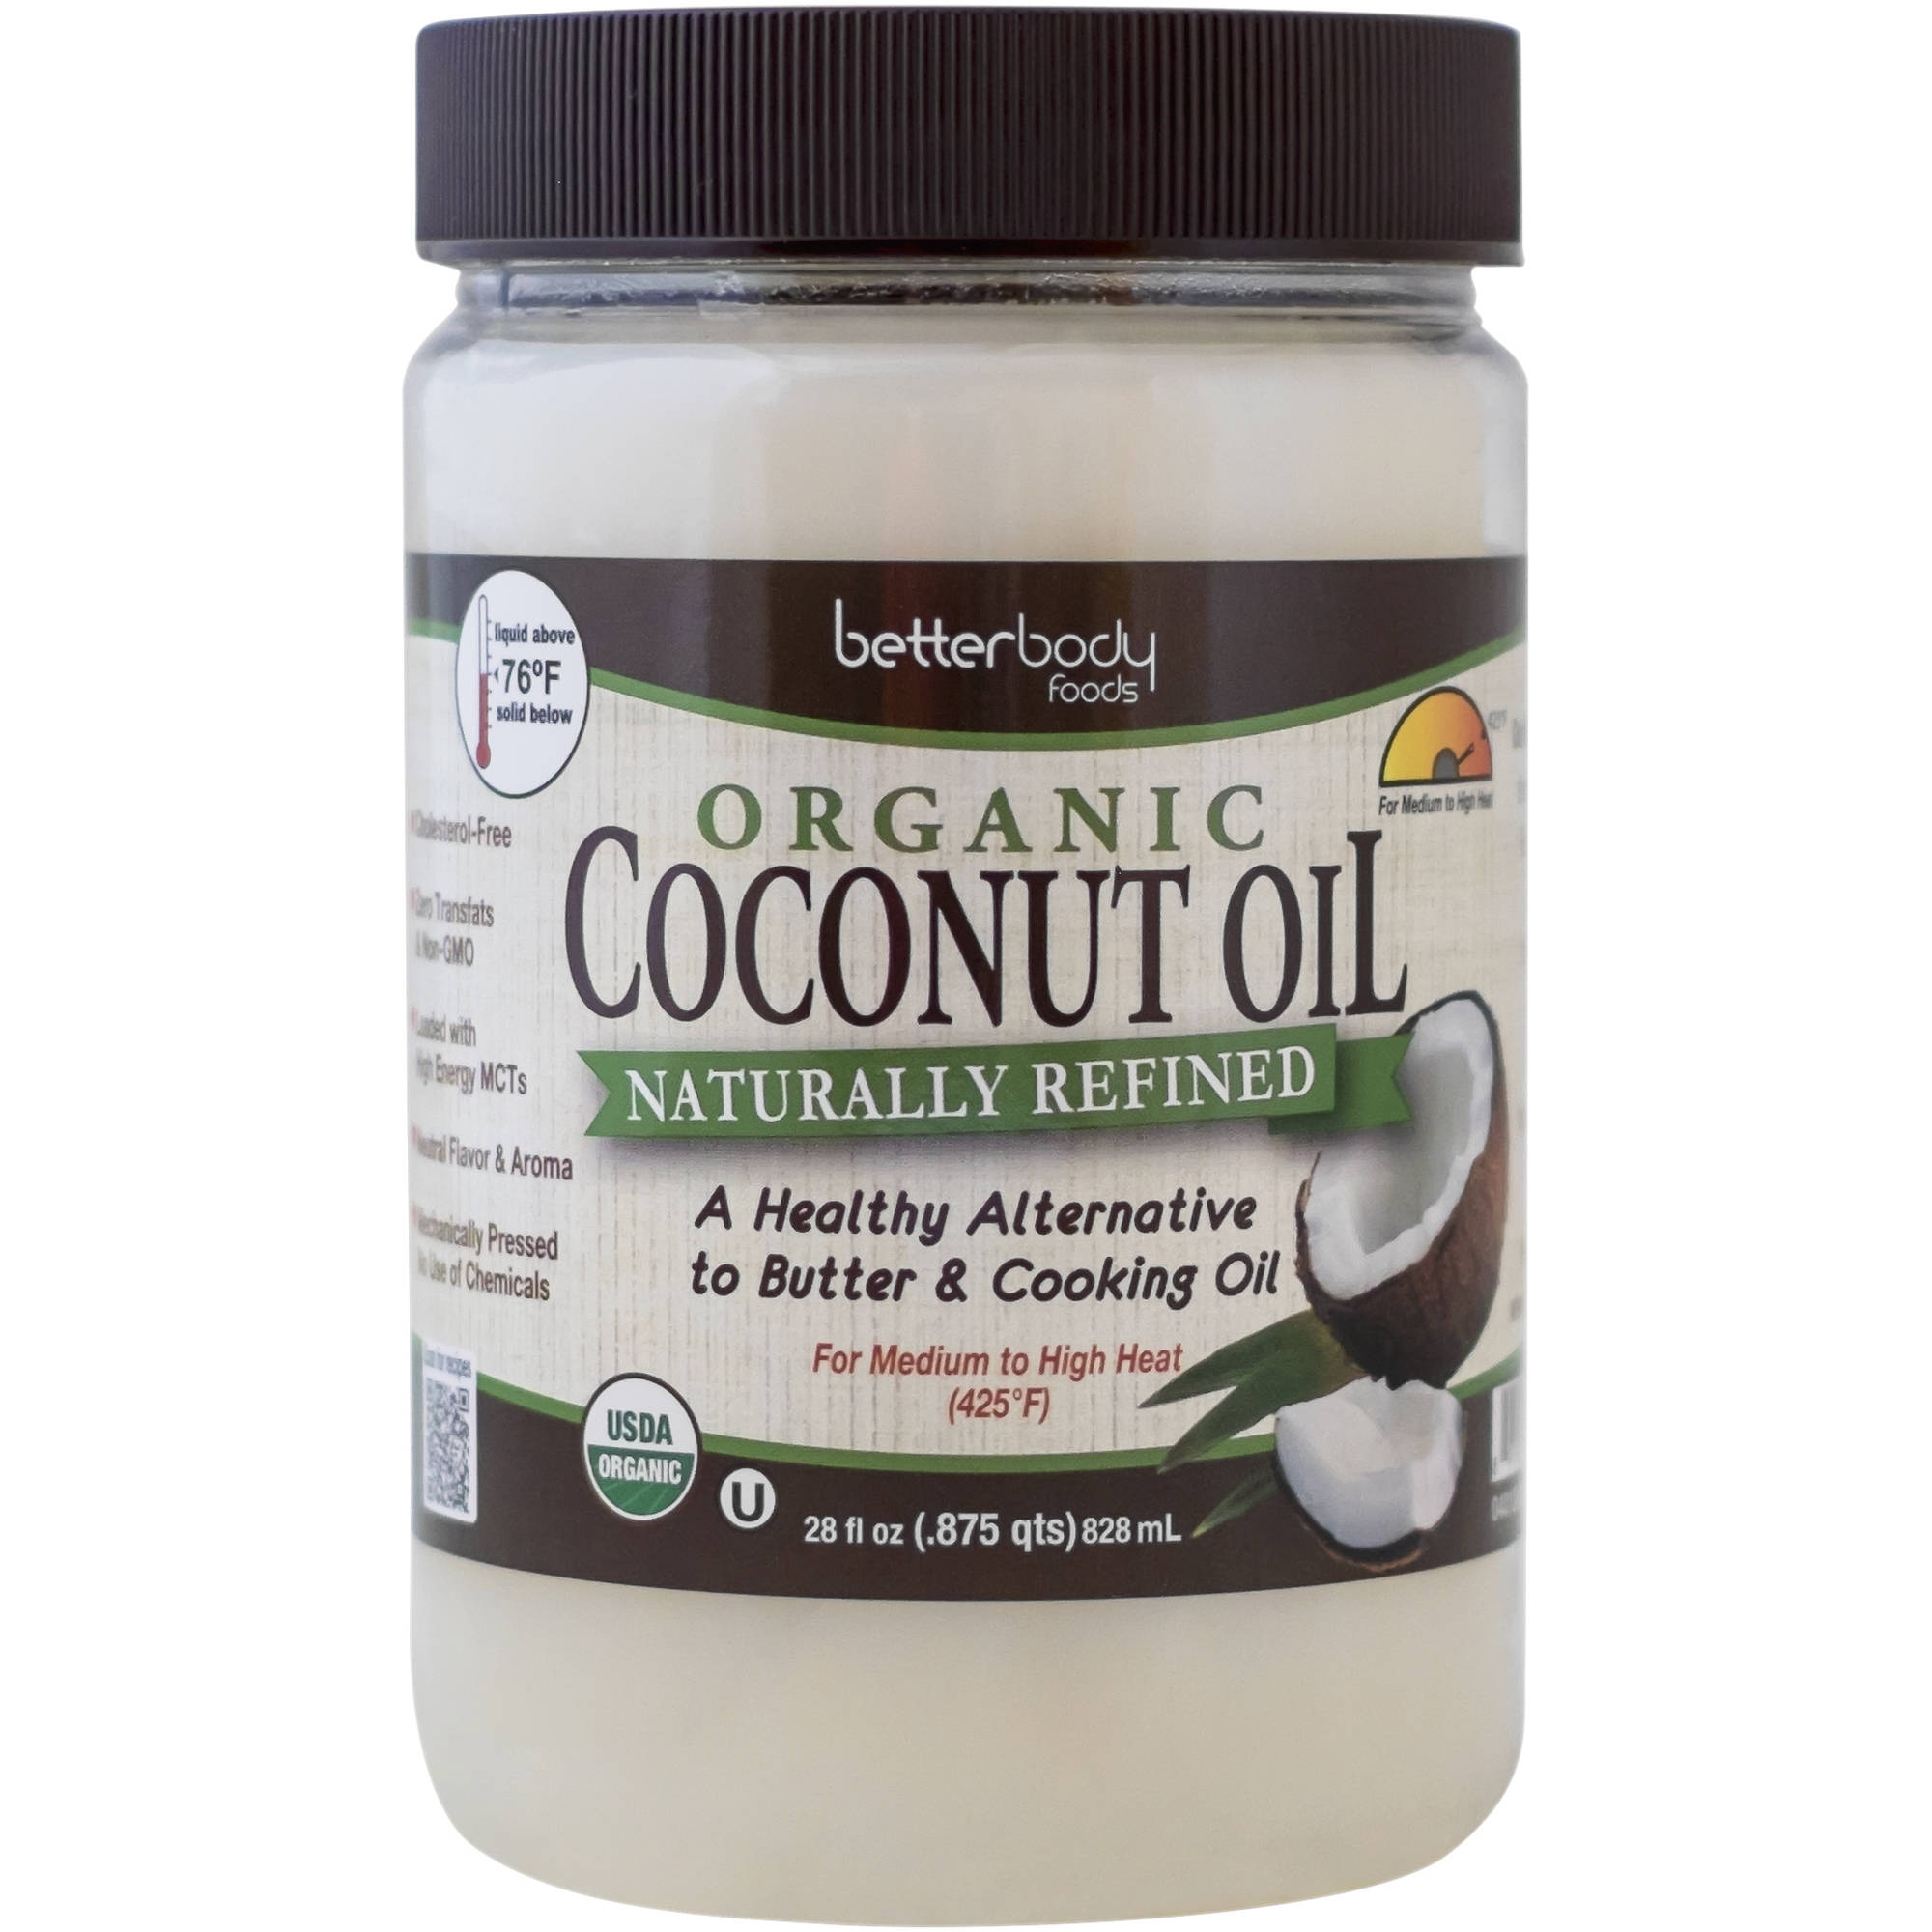 BetterBody Foods Naturally Refined Organic Coconut Oil, 28 fl oz